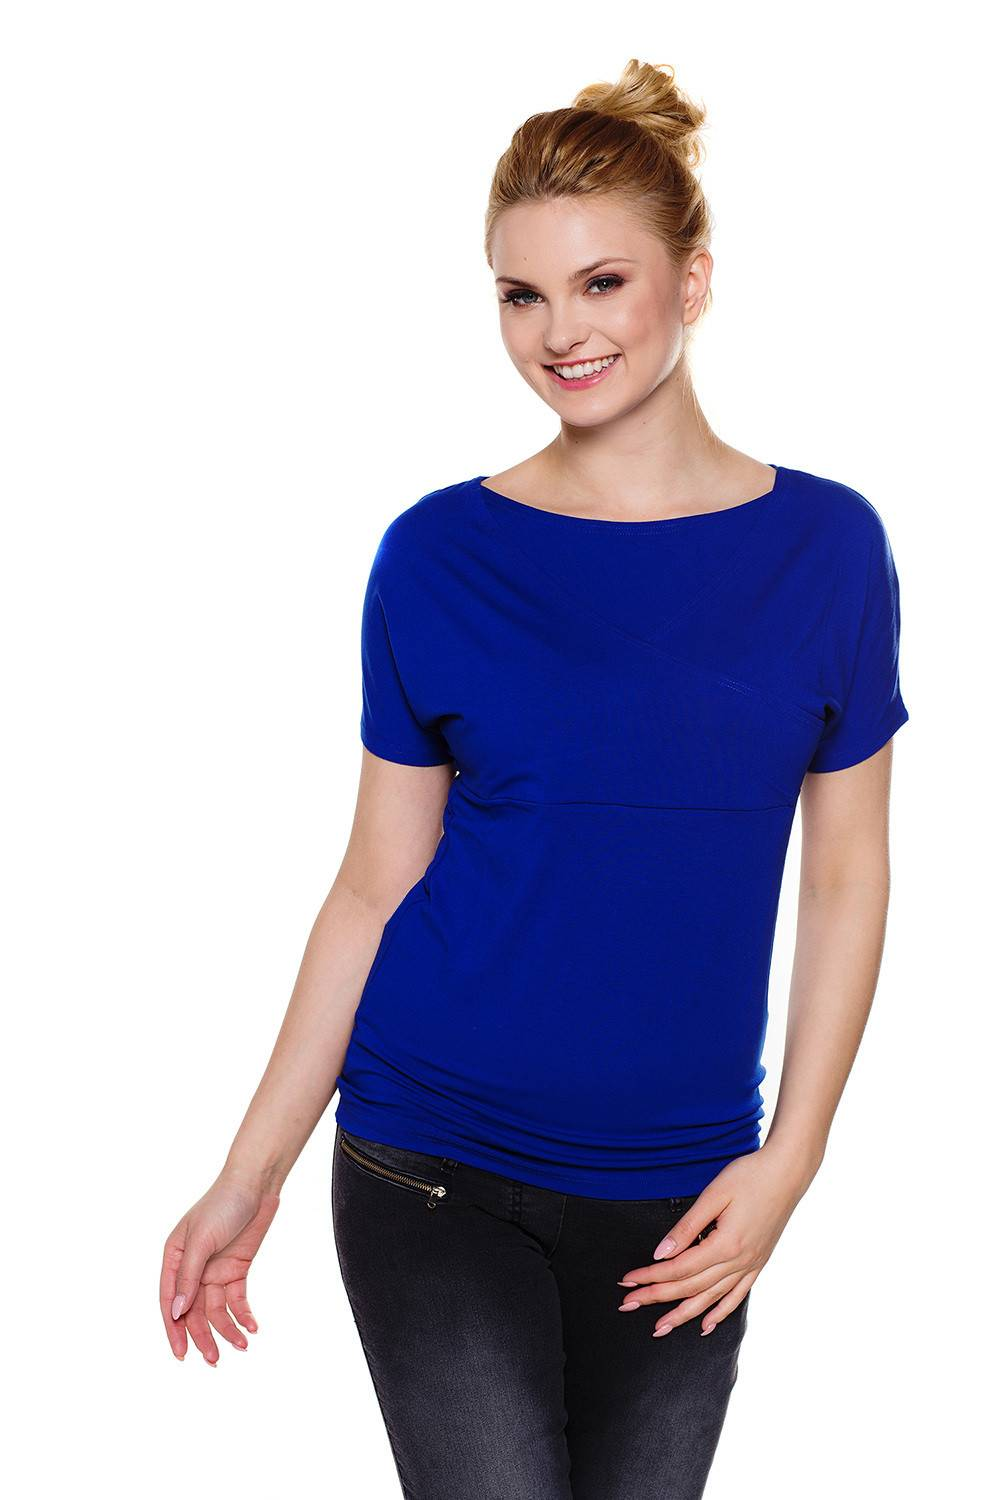 Nursing wrap top royal blue - Maternity top